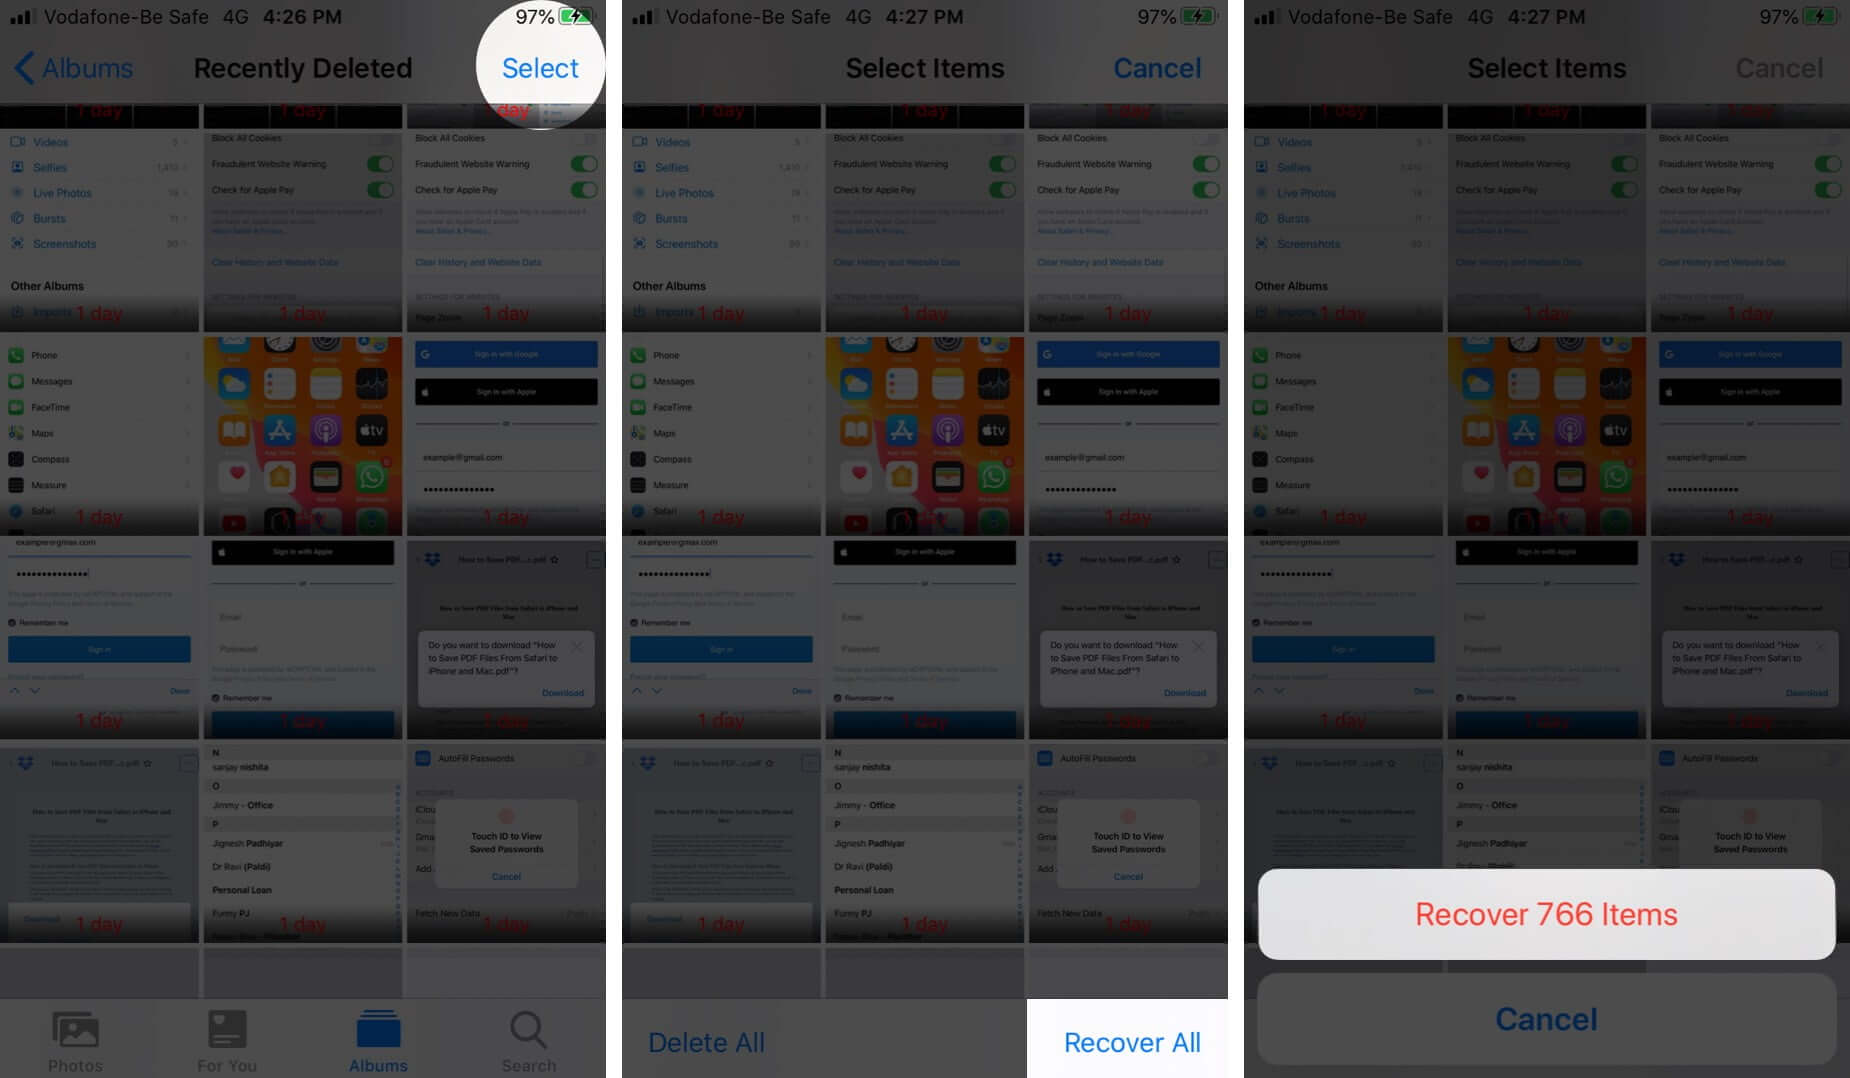 Recover All Photos from Recently Deleted Folder on iPhone